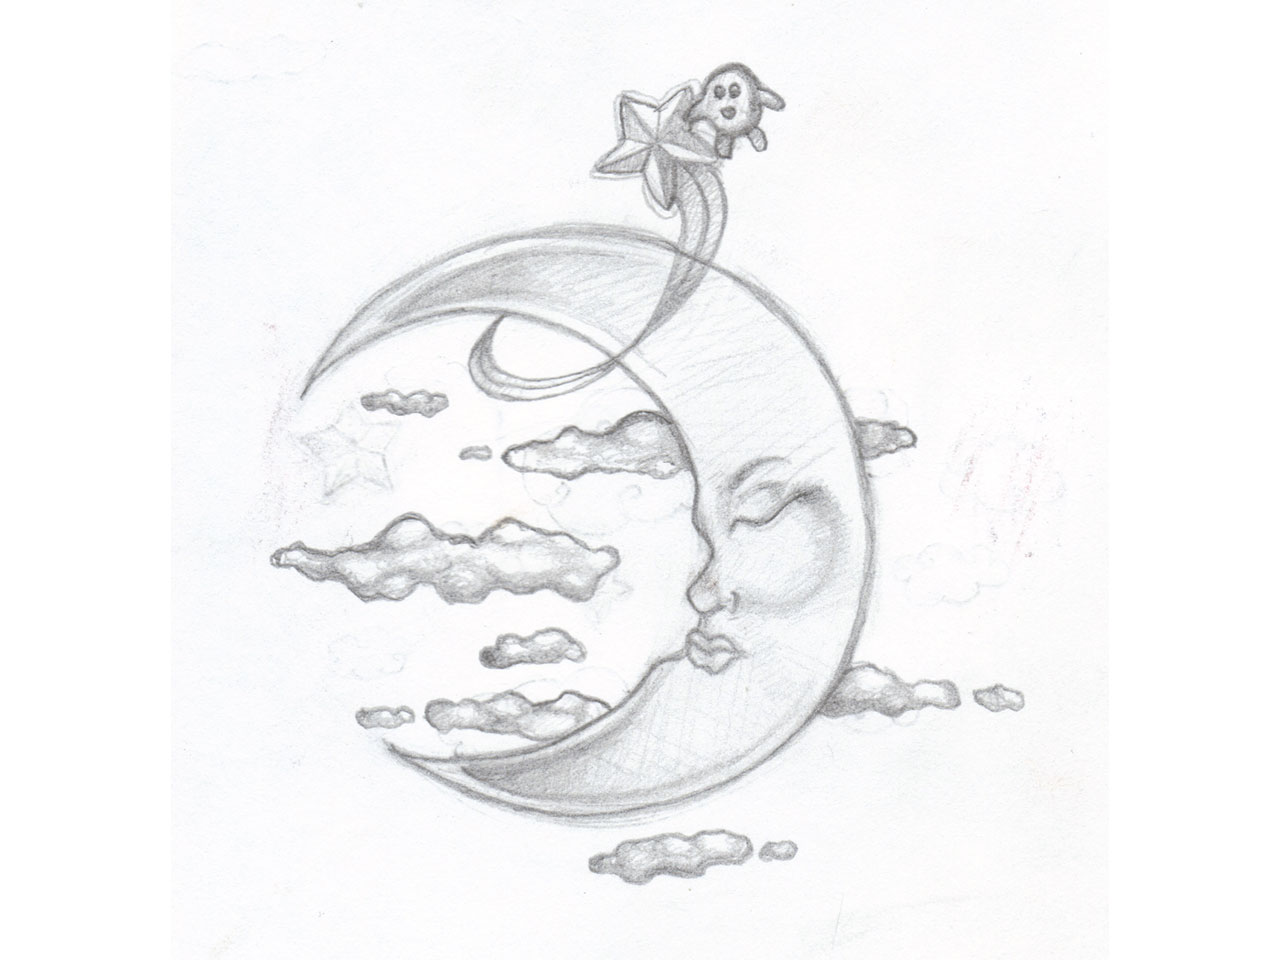 Moon And Cloud Tattoo Small: 11 Great Moon Tattoo Designs